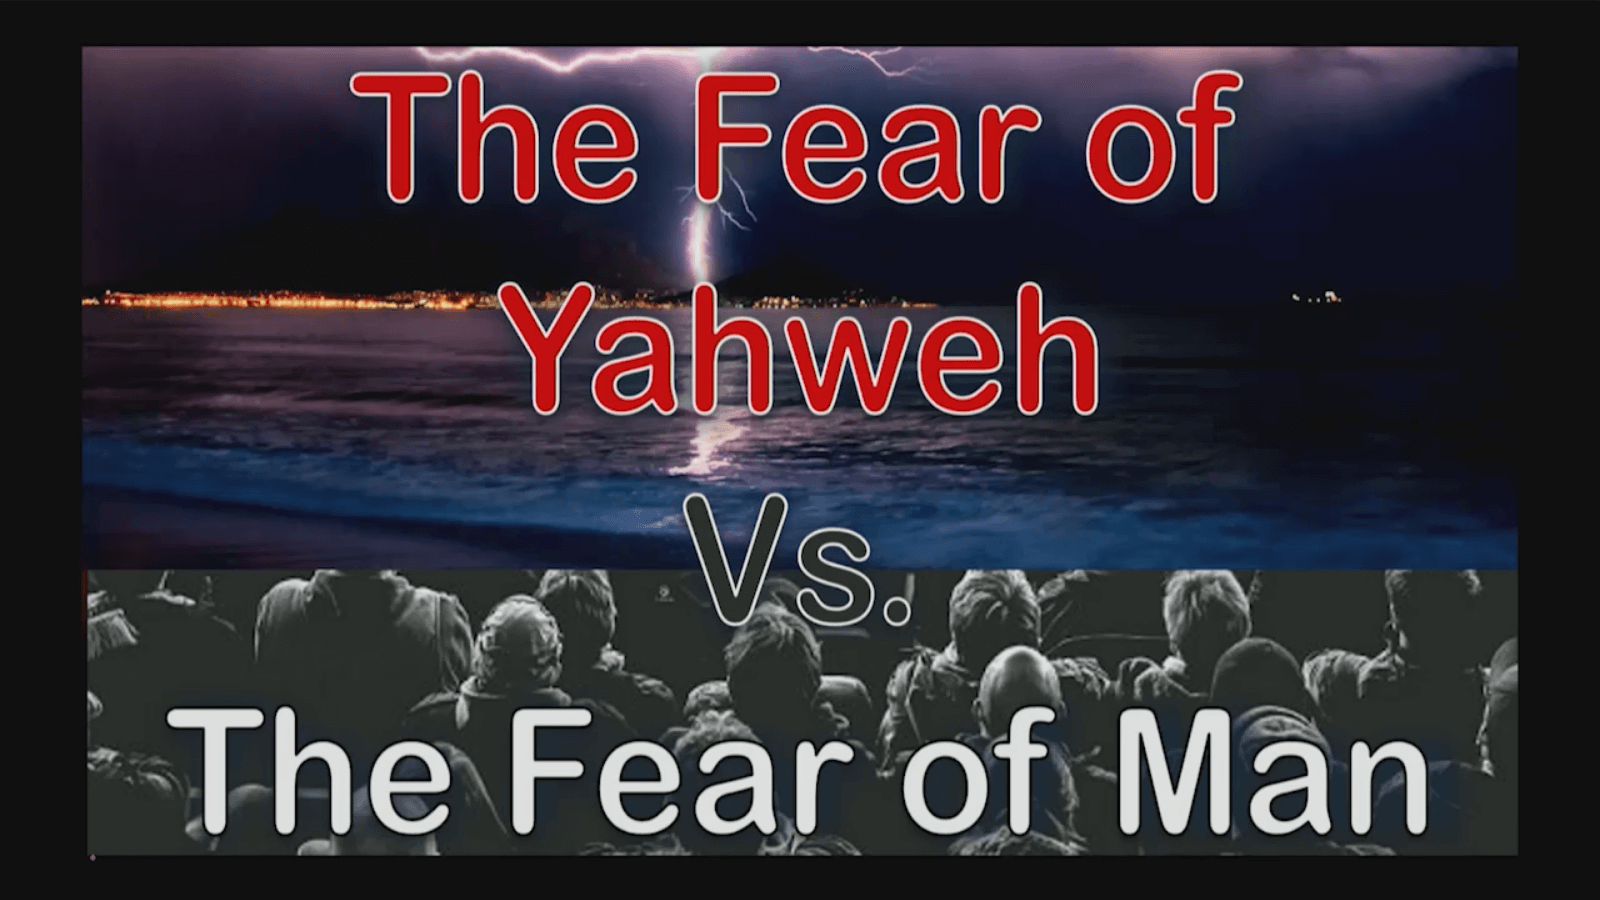 The Fear of Yahweh vs. the Fear of Man